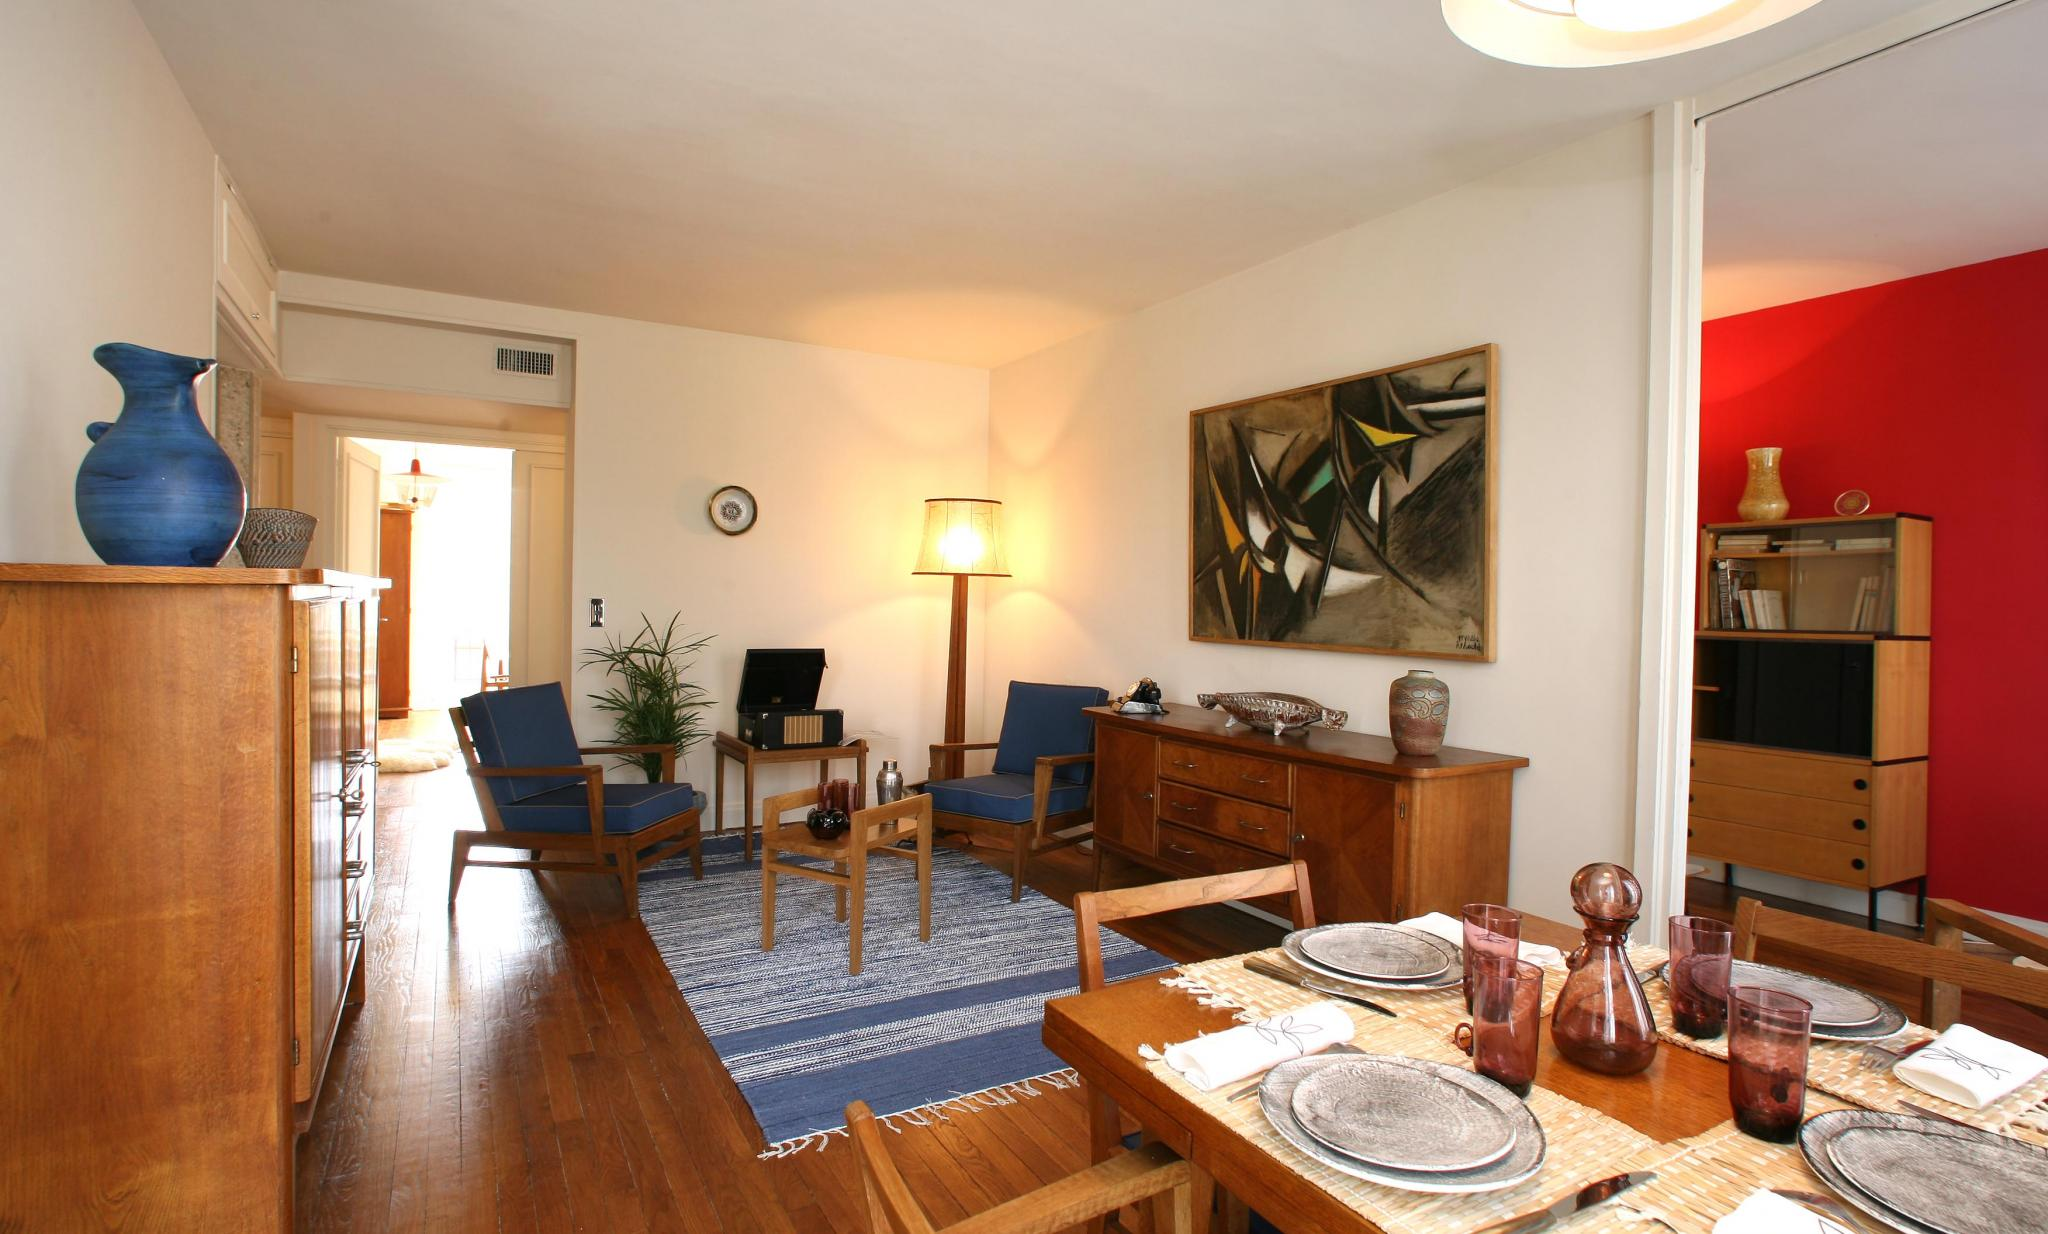 Lu0027appartement Témoin Perret